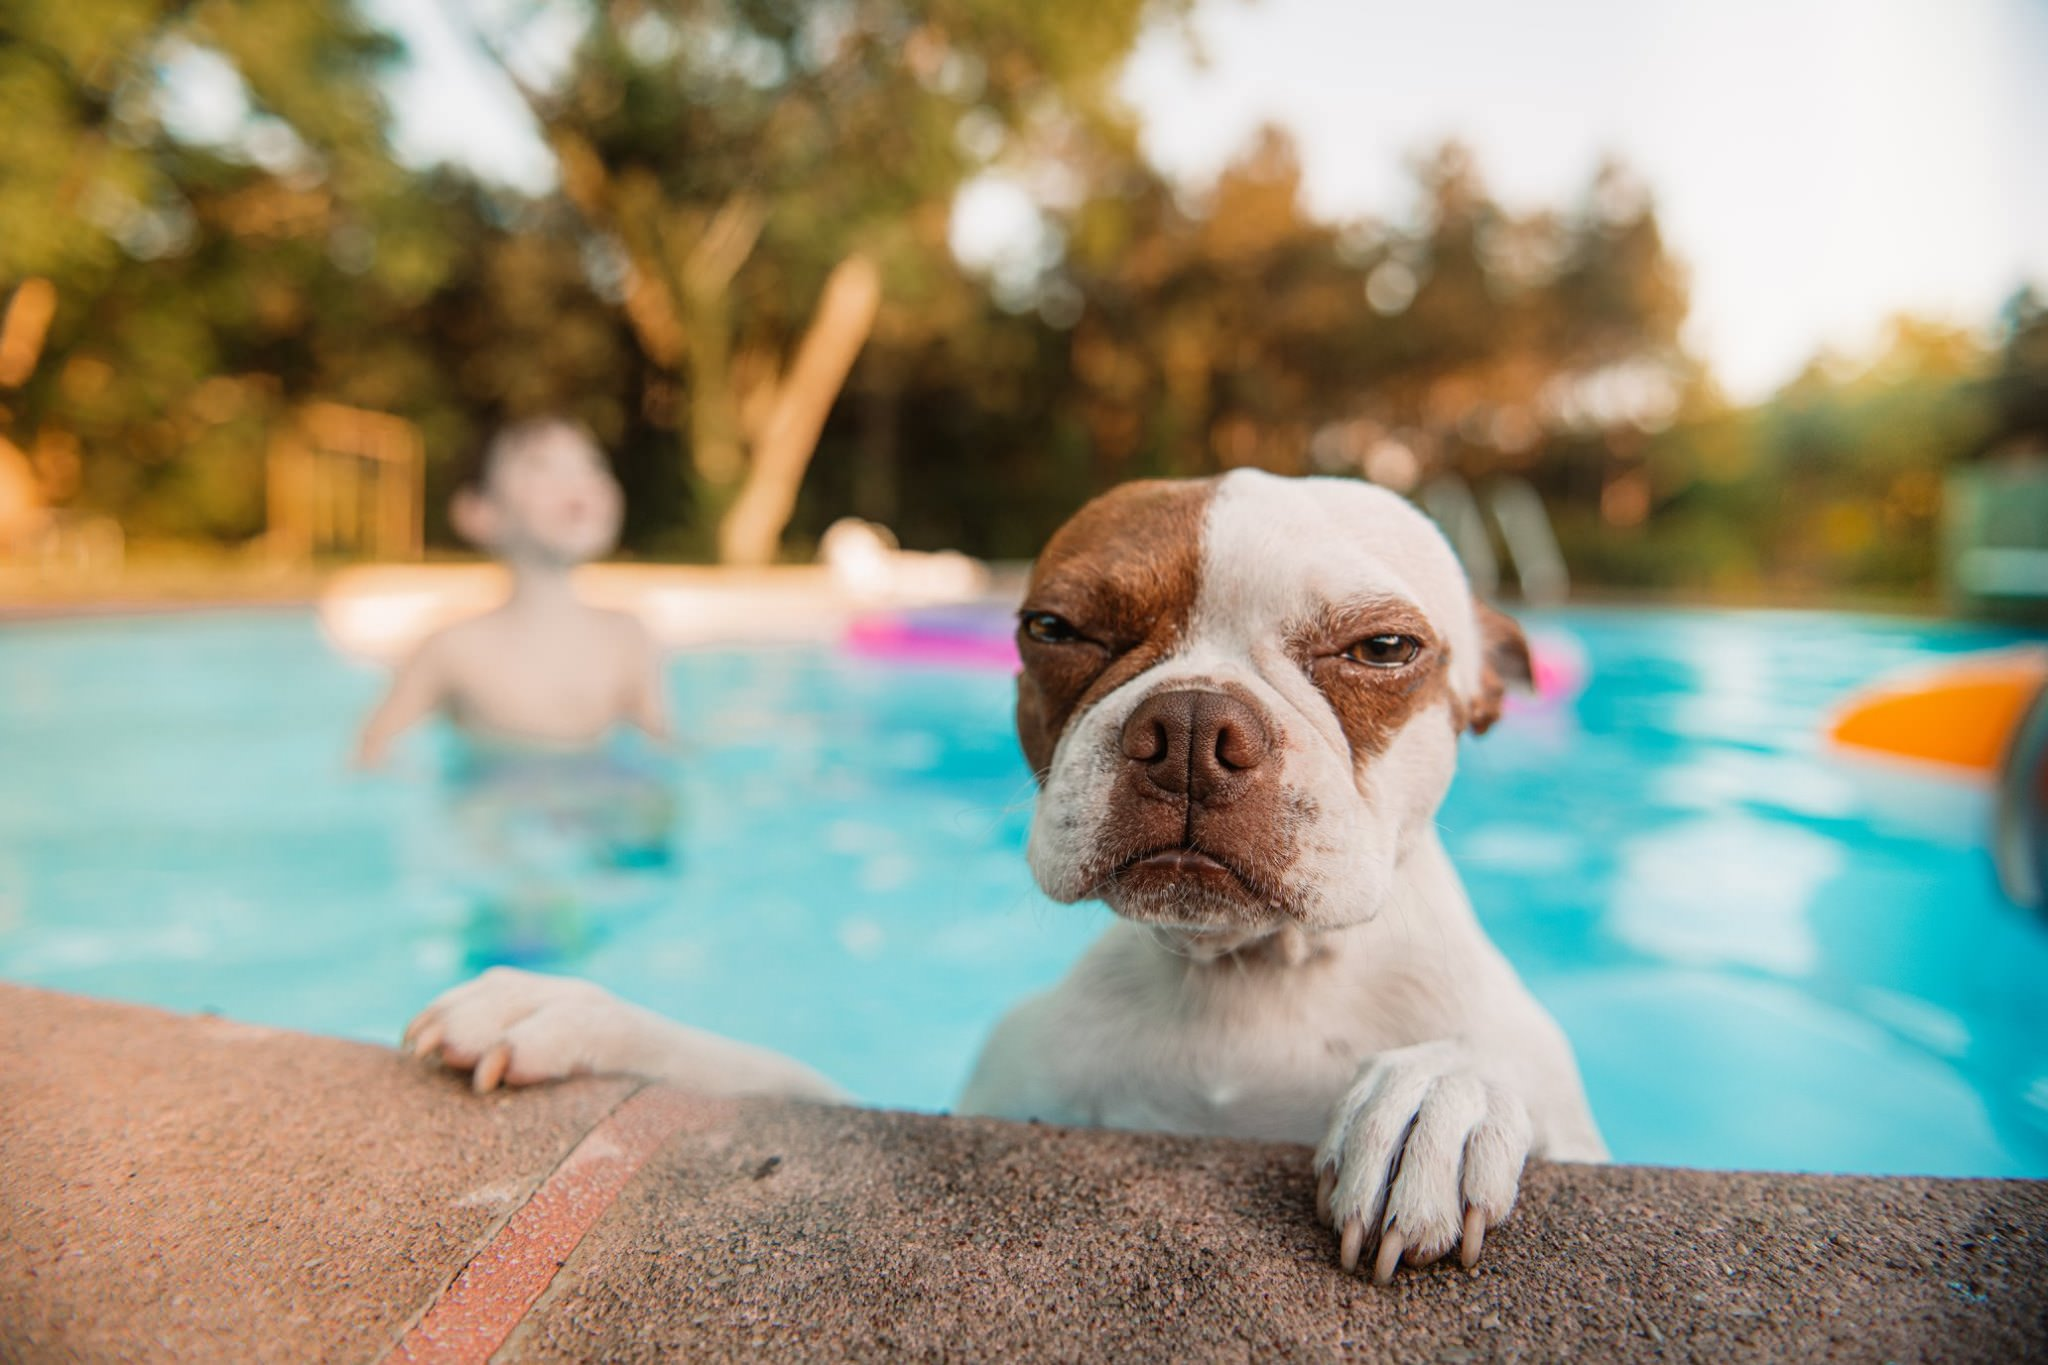 a dog in a pool looks straight into the camera and seems to angry